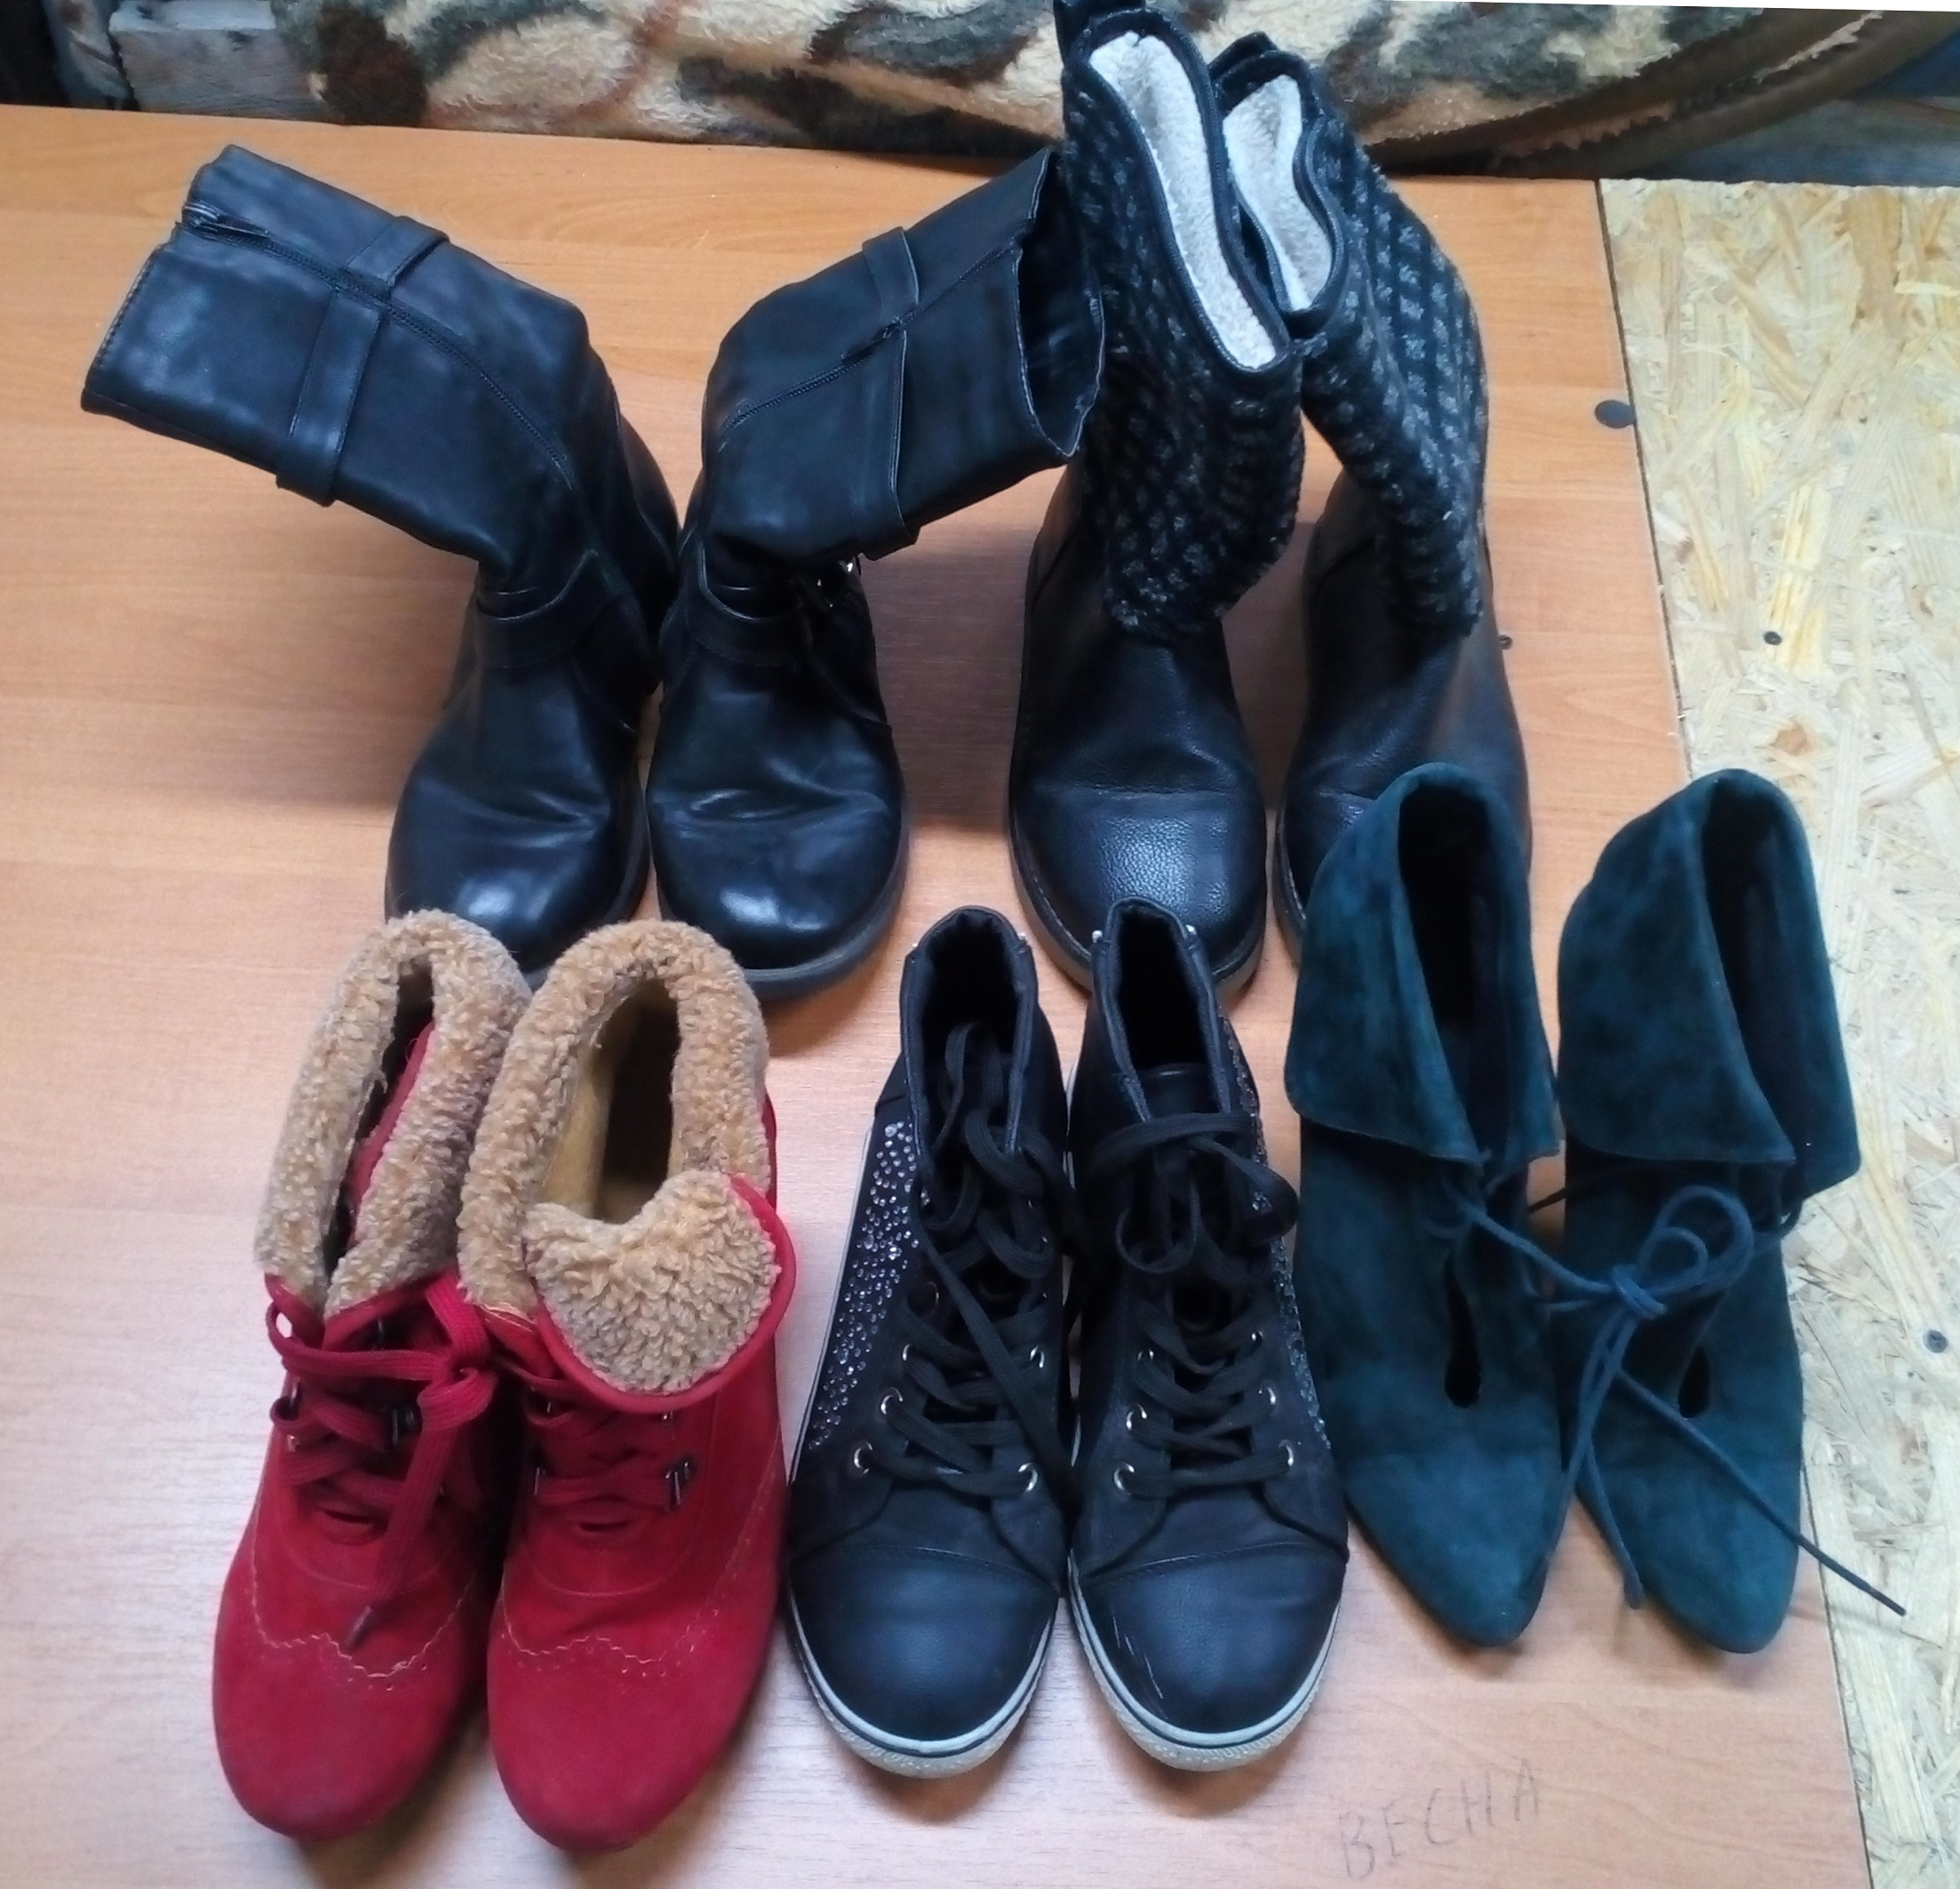 Good quality WINTER MIX used clothing and shoes in bales